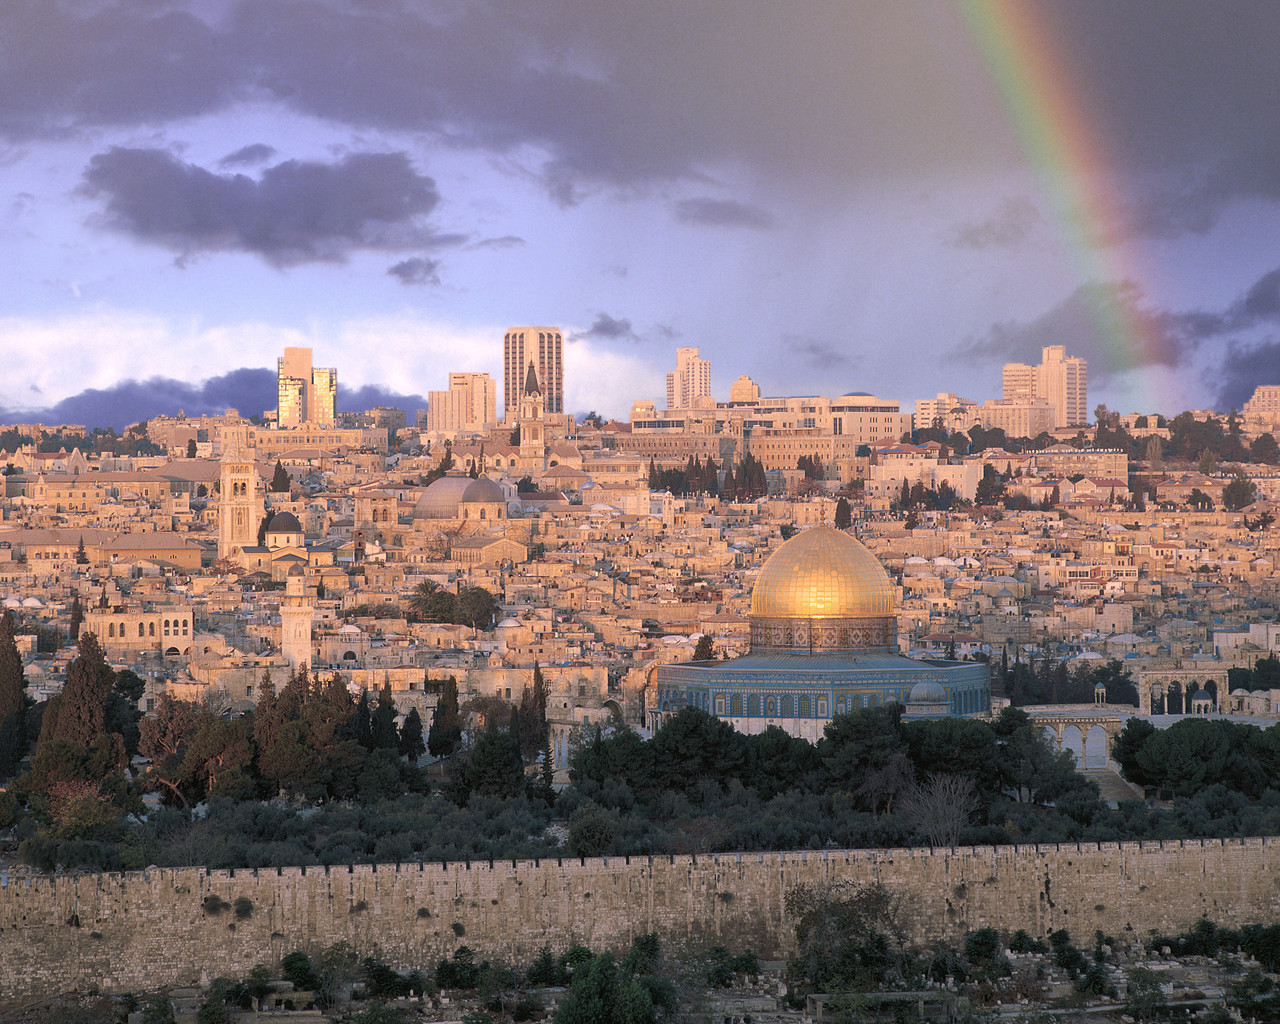 <strong>Christmas in the Holy Land with Anthony Rivera (Dec 27, 2016 - Jan 5, 2017)</strong>